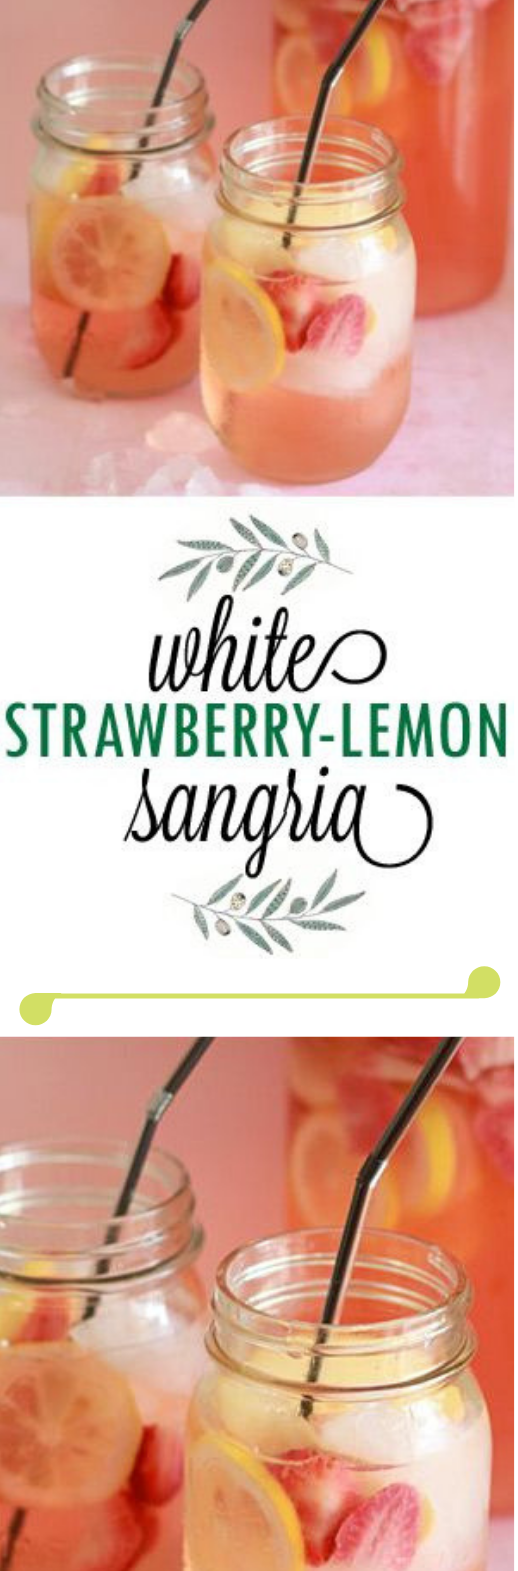 WHITE STRAWBERRY-LEMON SANGRIA #ice #sangria